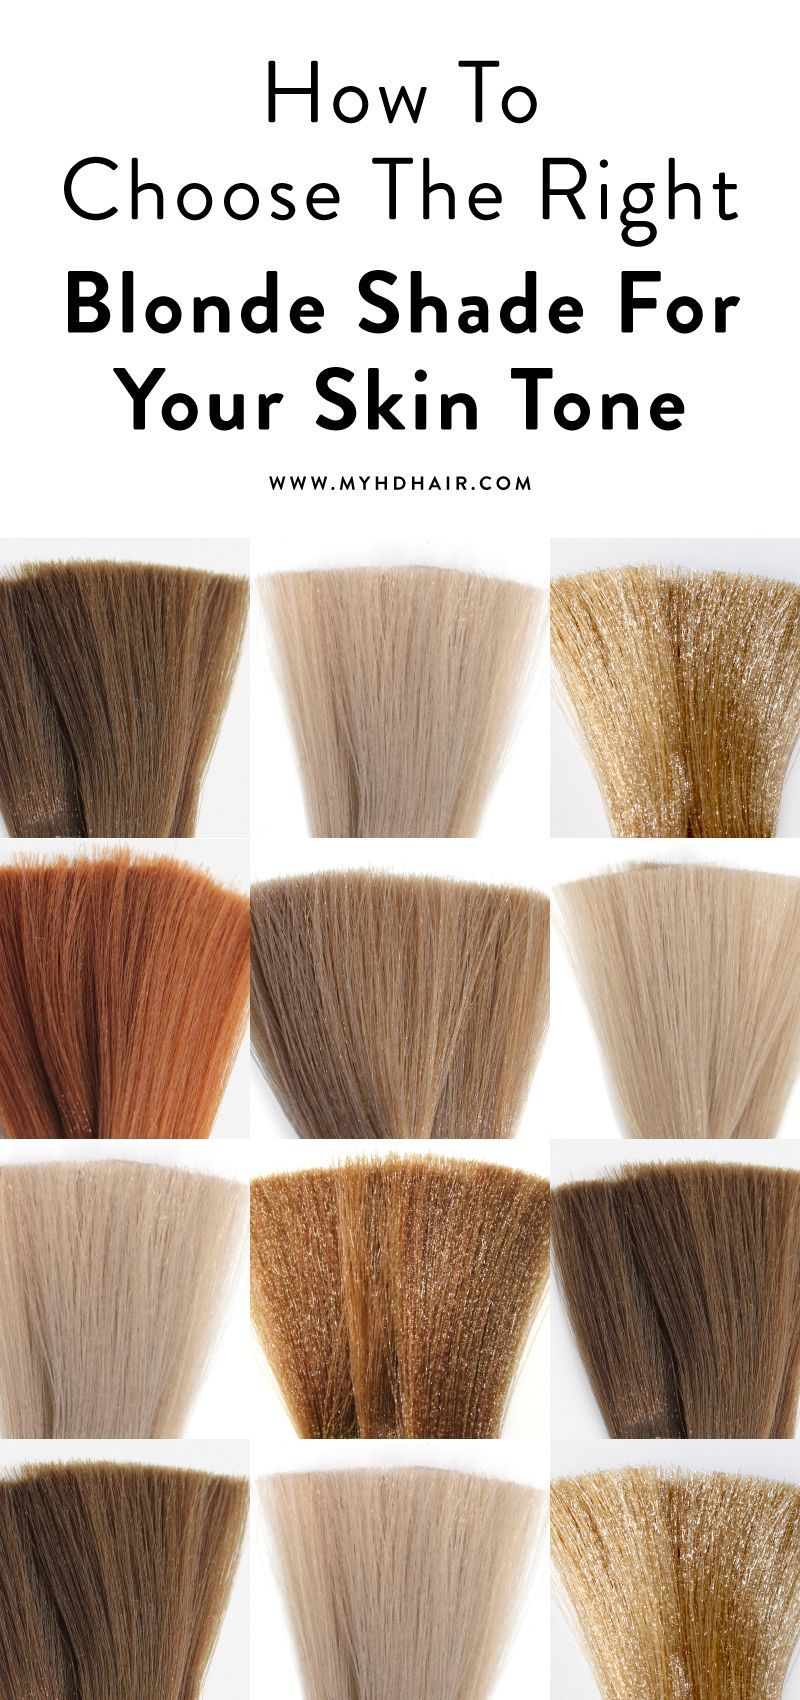 How To Choose The Right Blonde Shade For Your Skin Tone Skin Tone Hair Color Shades Of Blonde Pale Skin Hair Color